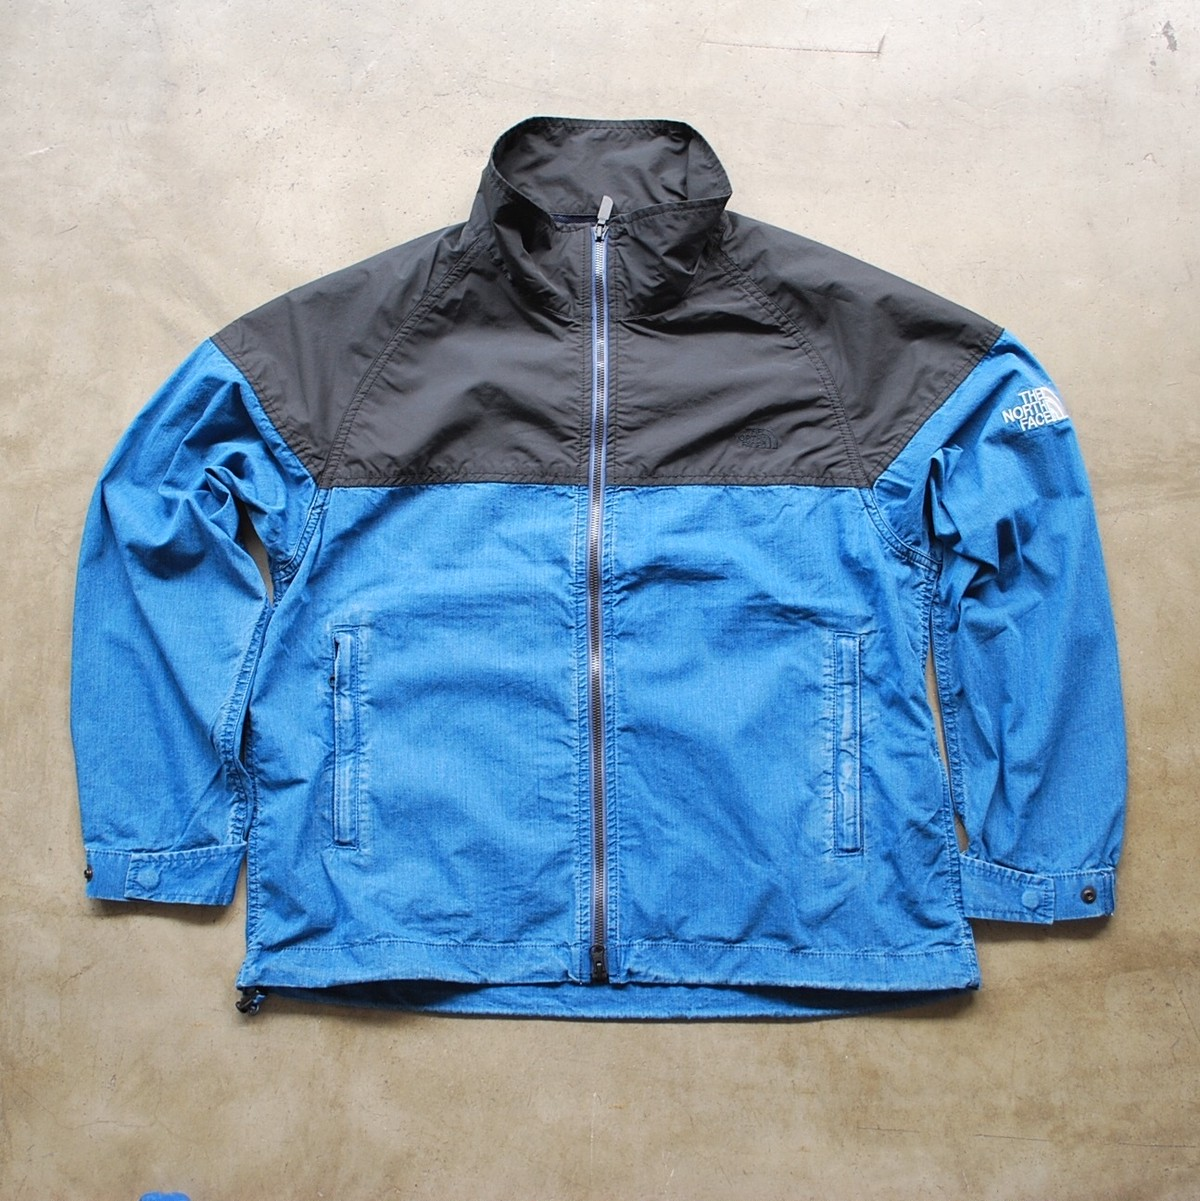 THE NORTH FACE PURPLE LABEL Mountain Field Jacket